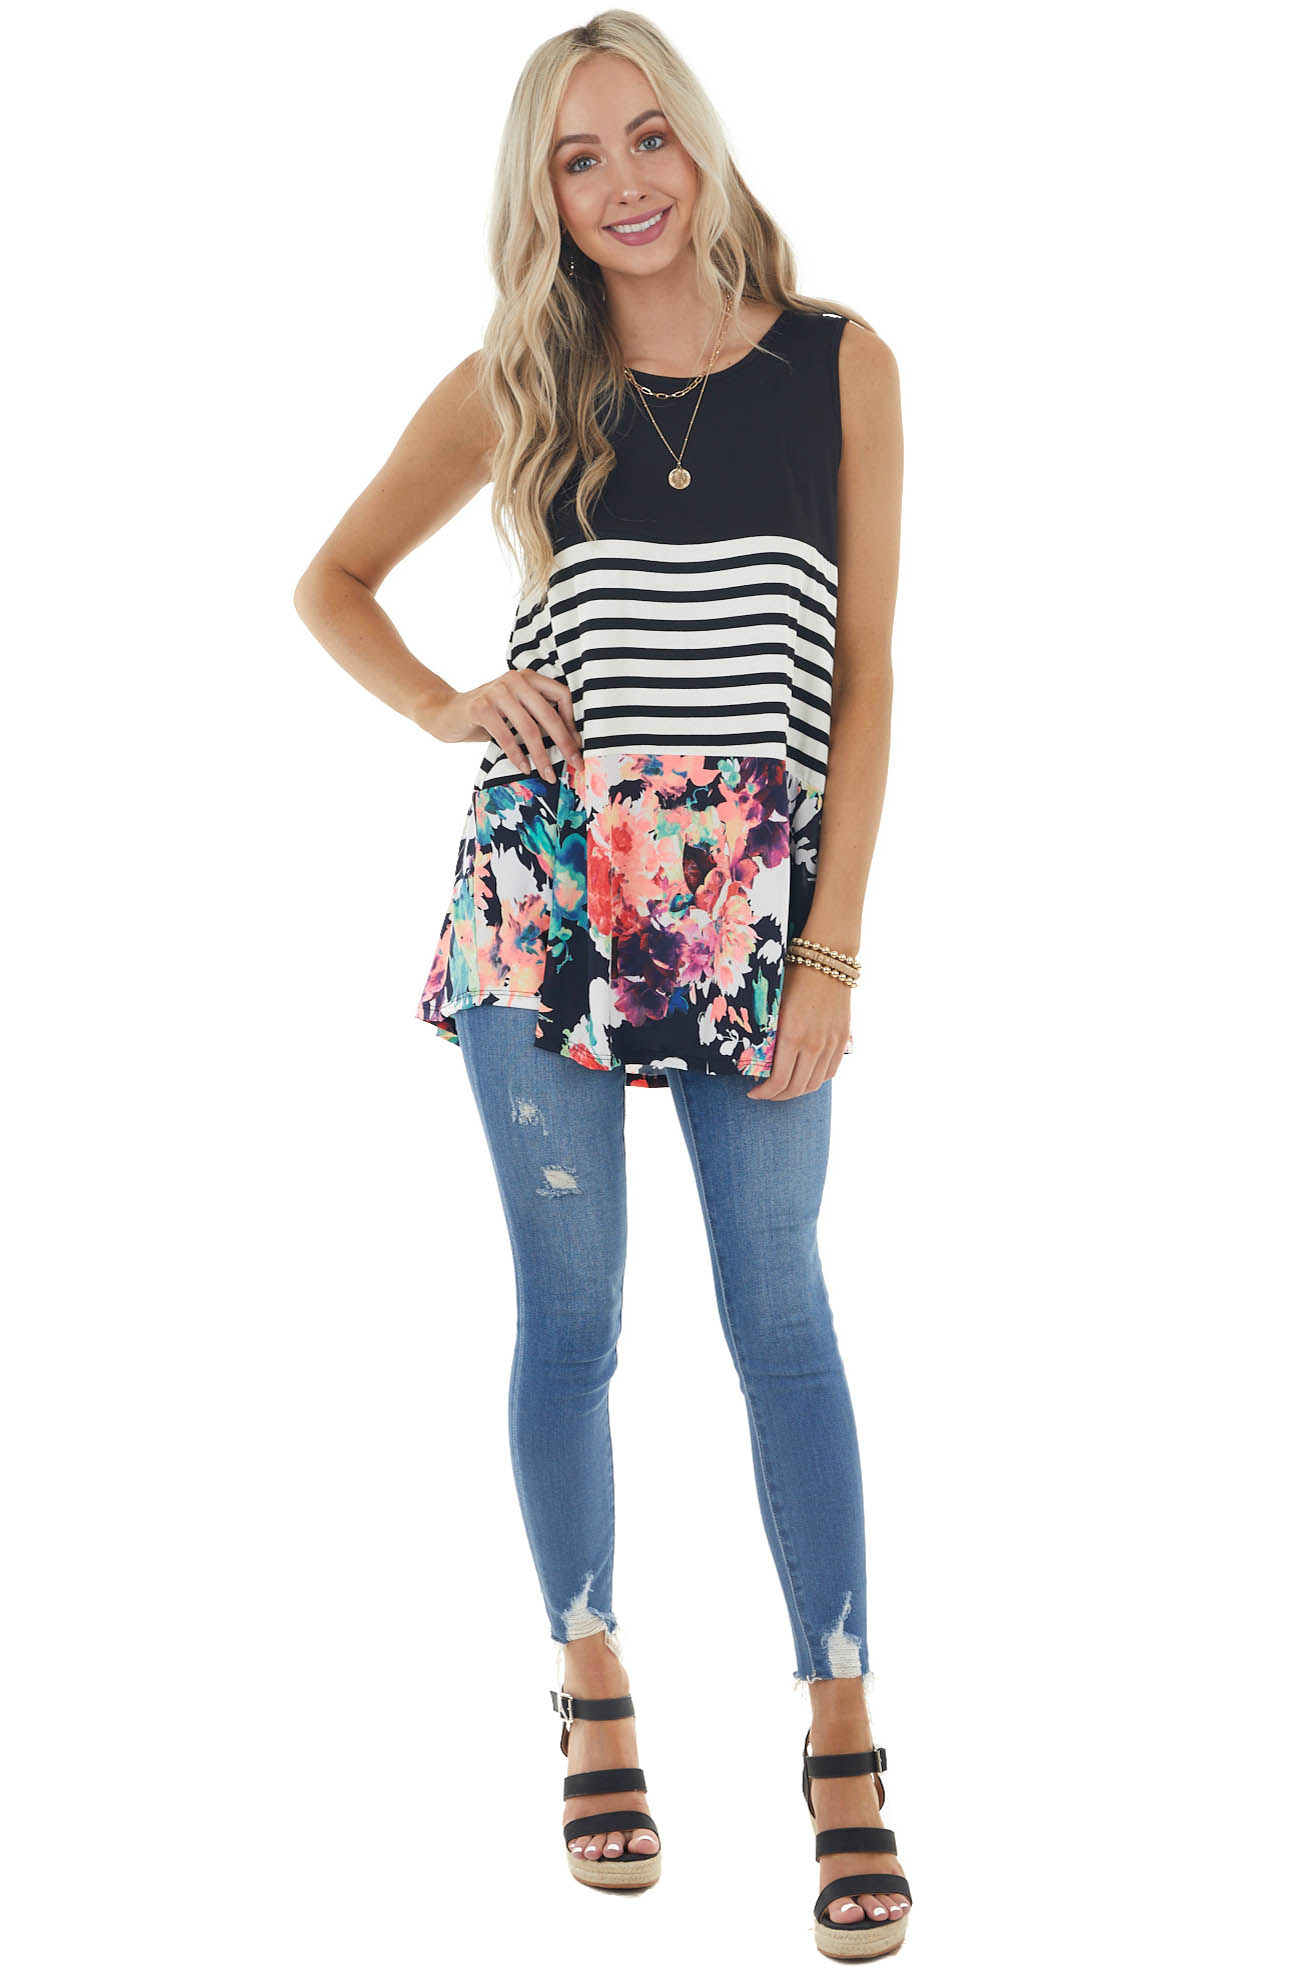 Black Floral and Stripe Colorblock Knit Tunic Tank Top